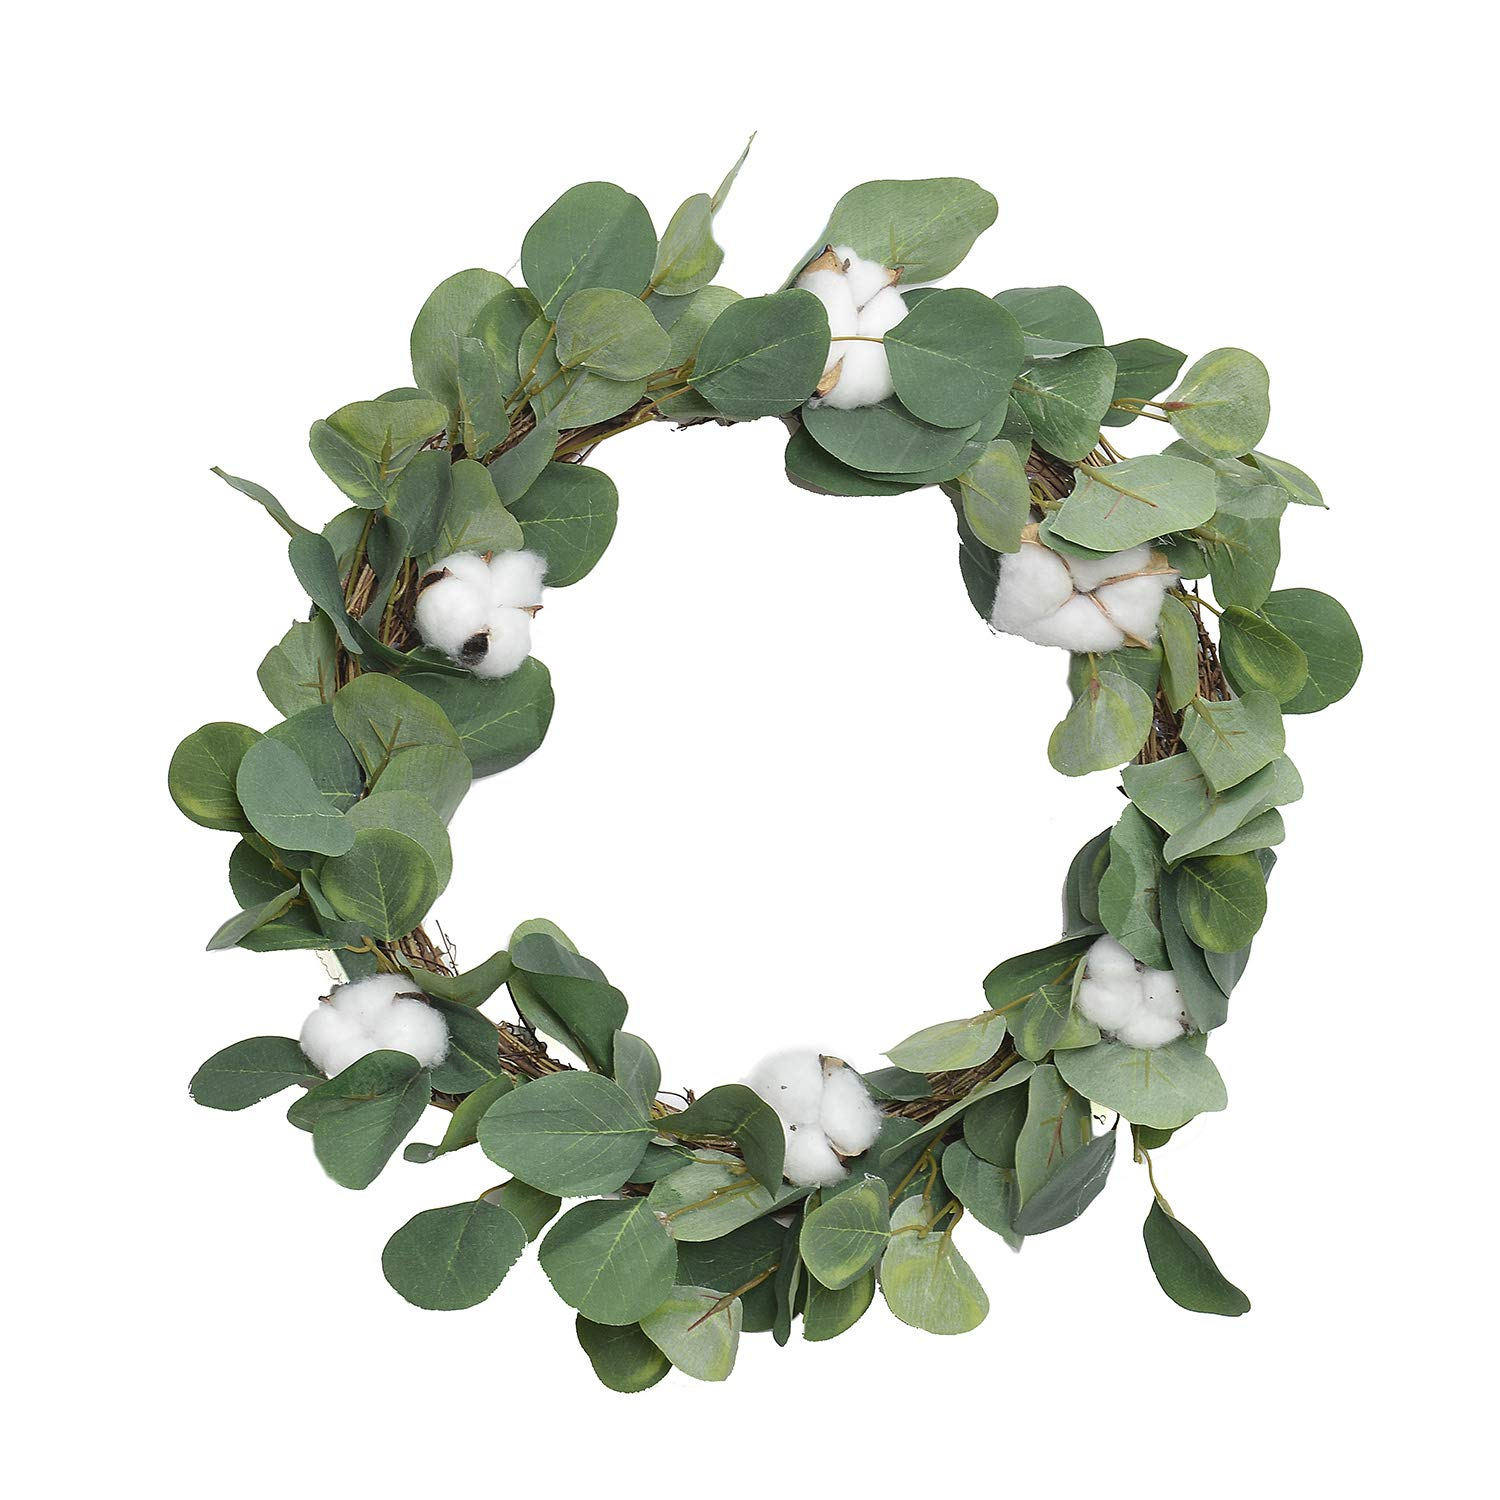 FAVOWREATH 2018 Vitality Series FAVO-W107 Handmade 15 inch Laurel/Eucalyptus Leaf,Cotton Grapevine Wreath for Summer/Fall Festival Front Door/Wall/Fireplace Every Day Nearly Natural Home Hanger Decor